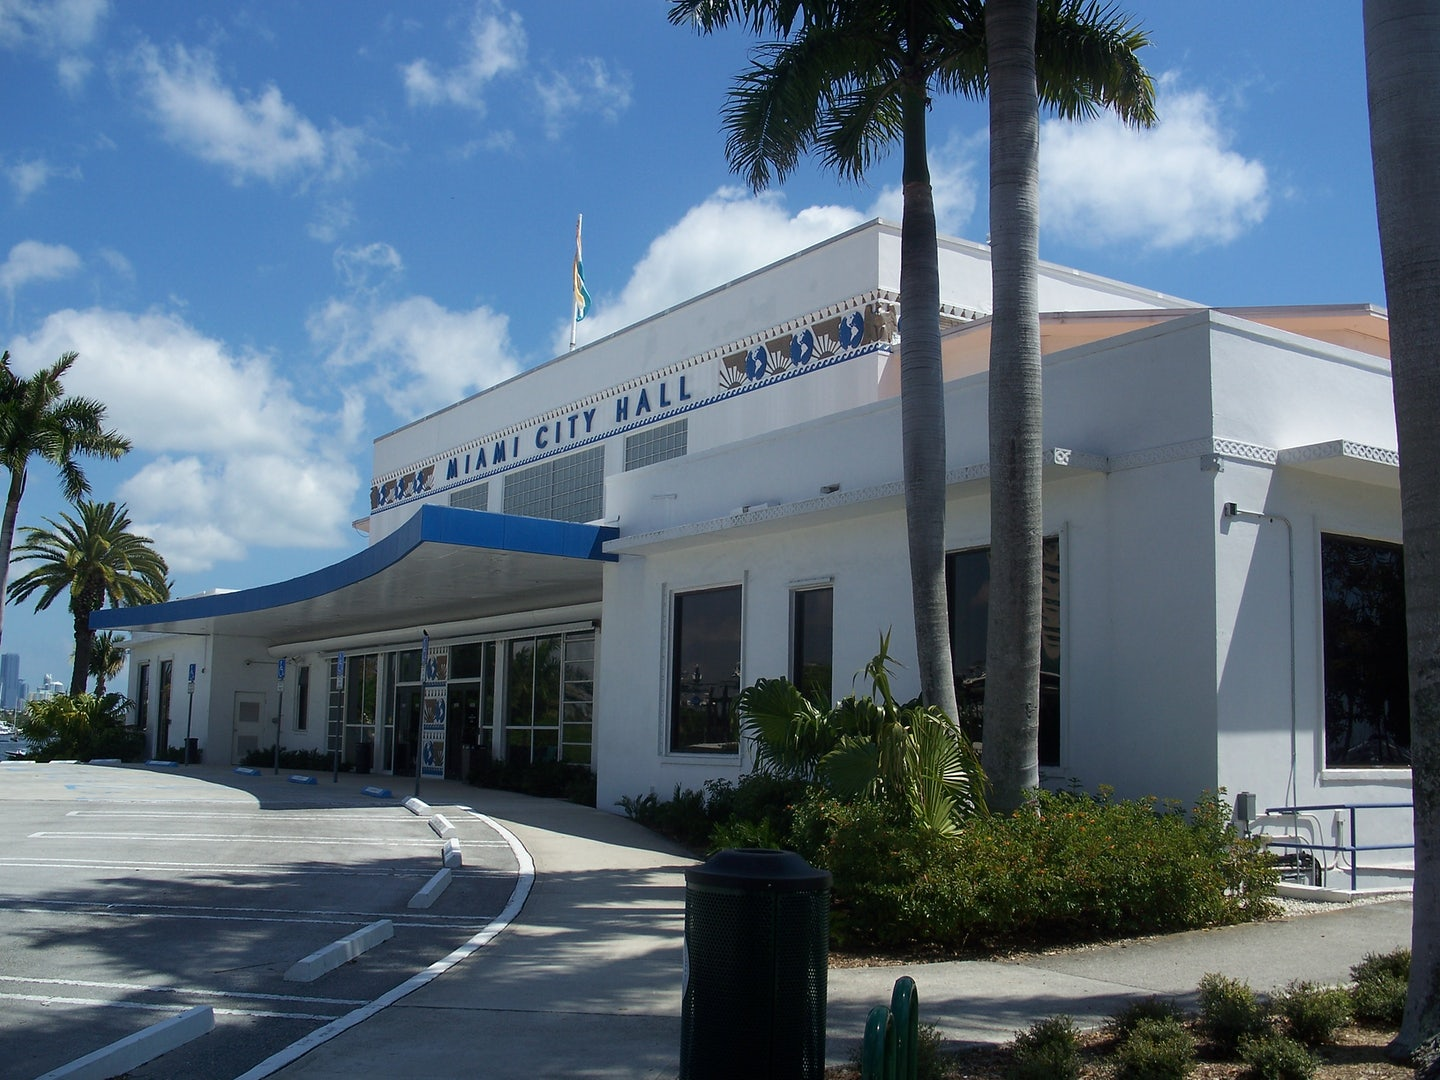 entrance of the Miami City Hall